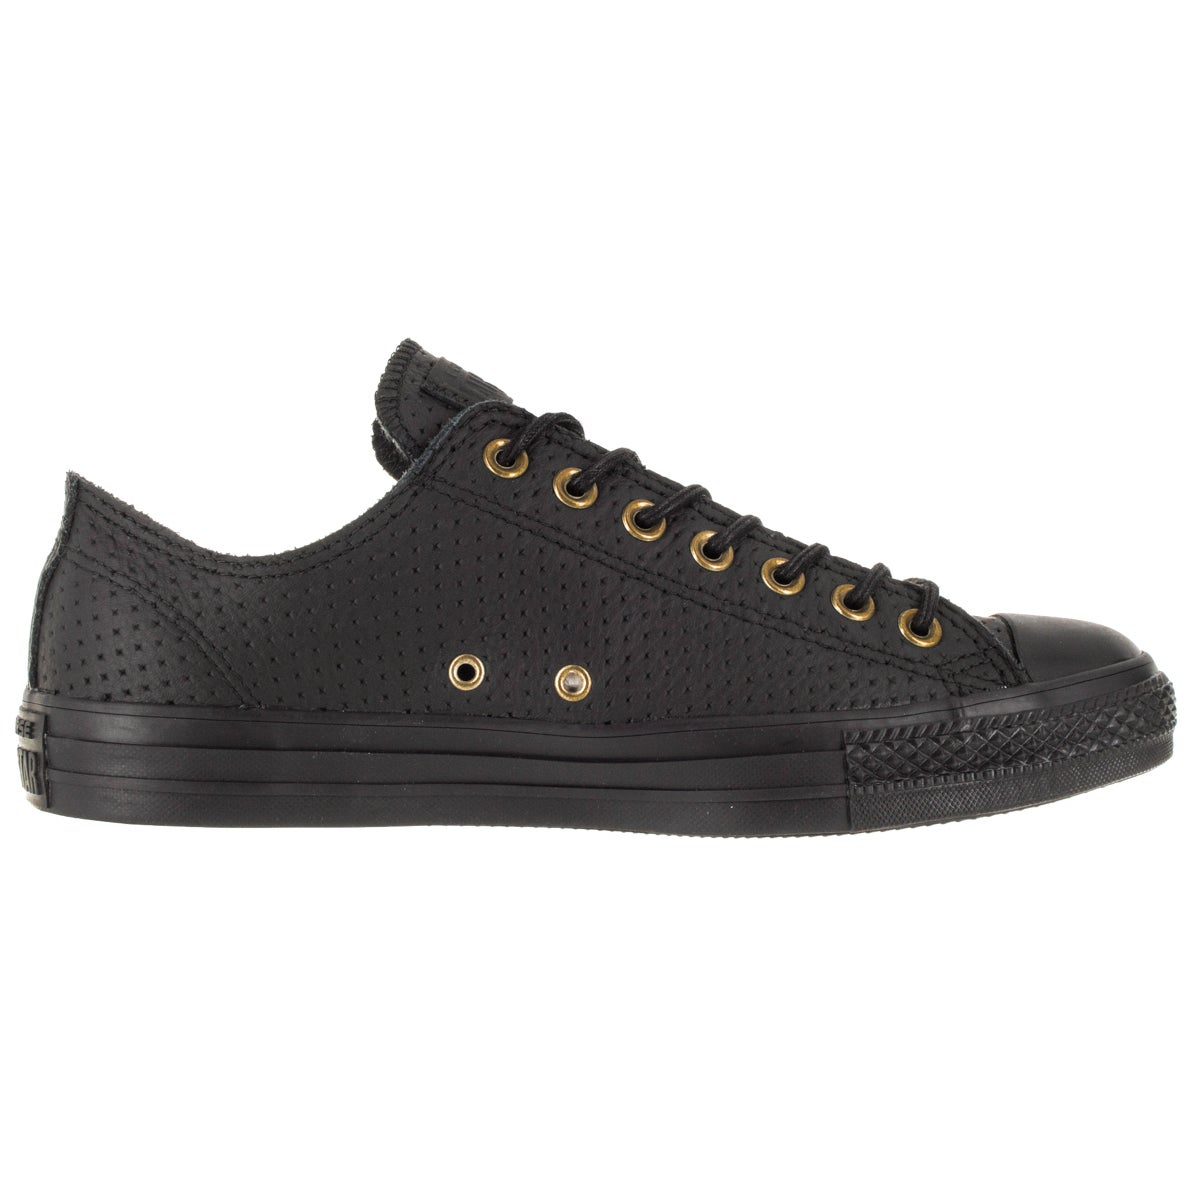 15cd8c9f86bc Shop Converse Unisex Chuck Taylor All Star Ox Black Biscui Basketball Shoe  - Free Shipping Today - Overstock.com - 12319074